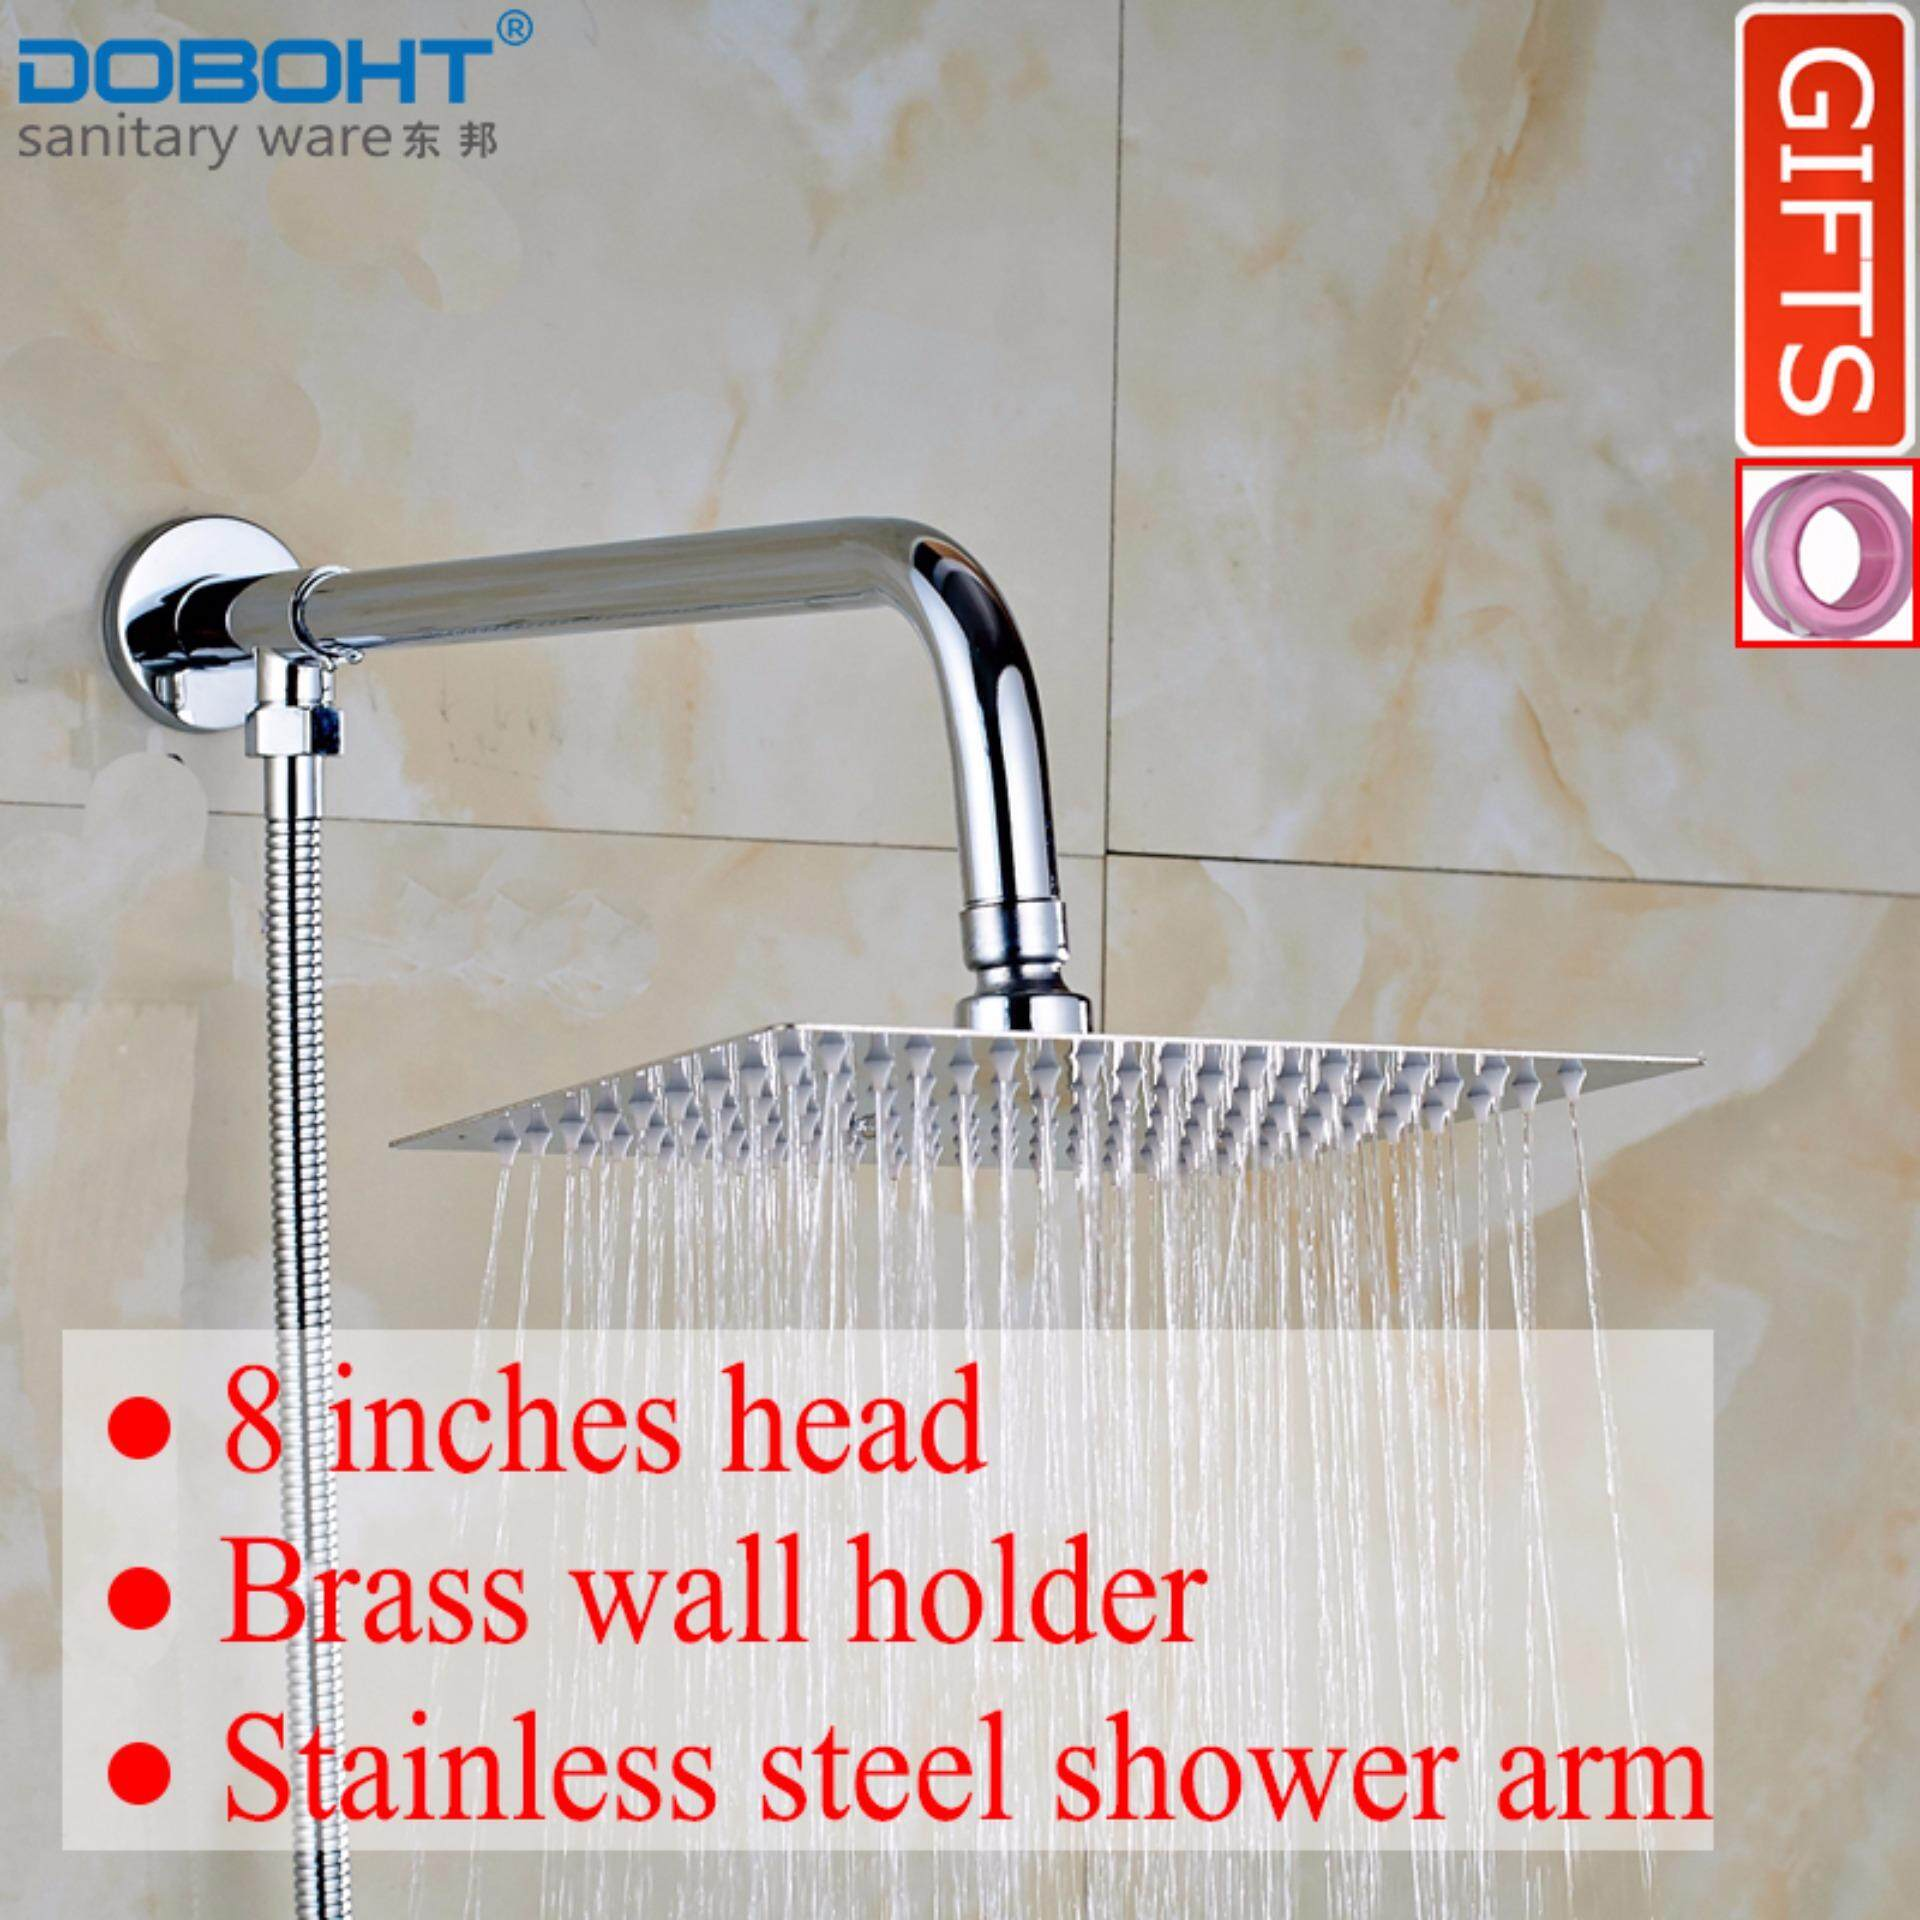 ขาย Doboht Bathroom Home Shower Set With 8 Inch Stainless Steel Shower Head And Shower Arms And 1 5M Hose Chrome Intl ออนไลน์ จีน